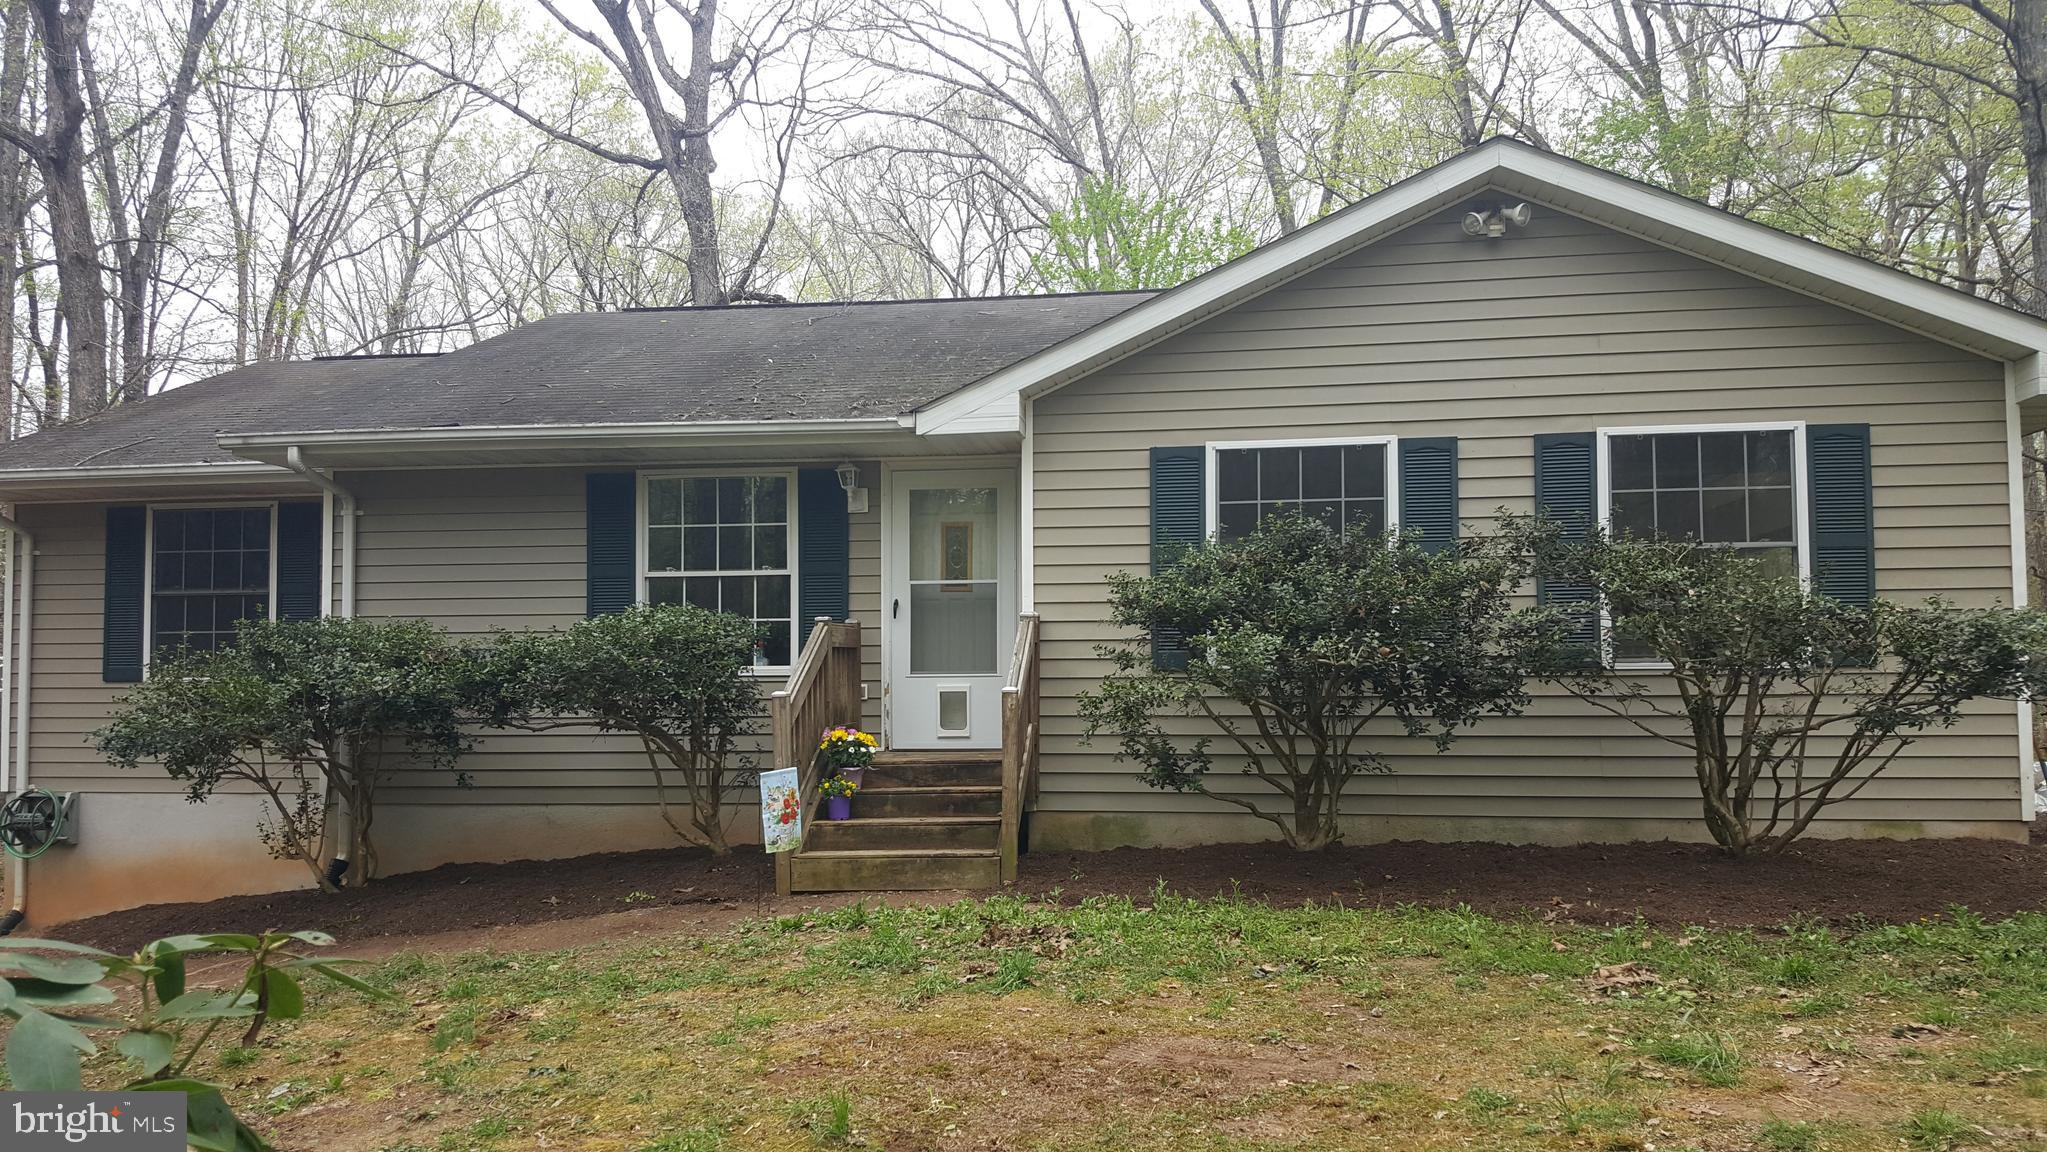 """BRING OFFERS! """"AS-IS"""" Rambler on 2.45 wooded acres priced to sell fast! Owner not doing any repairs to leave this 3 Bed 3 Bath Raised Rambler with 2040 total square ft up/down, 1530 finished total, 1020 upper and 510 down, 510 unfinished down. This is a great fixer upper with solid bones, DRY BASEMENT! for someone who wants to put in the sweat equity to re-finish kitchen, replace carpets (Pet Damage), repair some drywall and moldings and re-do a kitchen floor. Attached 2 car garage with newer opener, newer AC/heat pump units and electronic humidifier with about 10 months of Appleton Campbell pre-paid service agreement on it. Newer water heater and water treatment system. Washer and dryer do not convey. NO HOA, just a minor road agreement. The kitchen needs work. Appliances are old. Sliding Double Glass Door to beautiful deck with mountain views. There are 3 beds upstairs and 2 full baths. Downstairs is 65% finished with a big living room, a full bath, a bonus room/Den/Office and walkout basement double French Door.  Home last sold for $291,000 on 9/25/2006. Pricing estimates and Bed/Bath information on Zillow and others is incorrect and incomplete. See old MLS listing VACU102308. Comcast cable installed, electric, well, septic all functioning. No fireplace."""